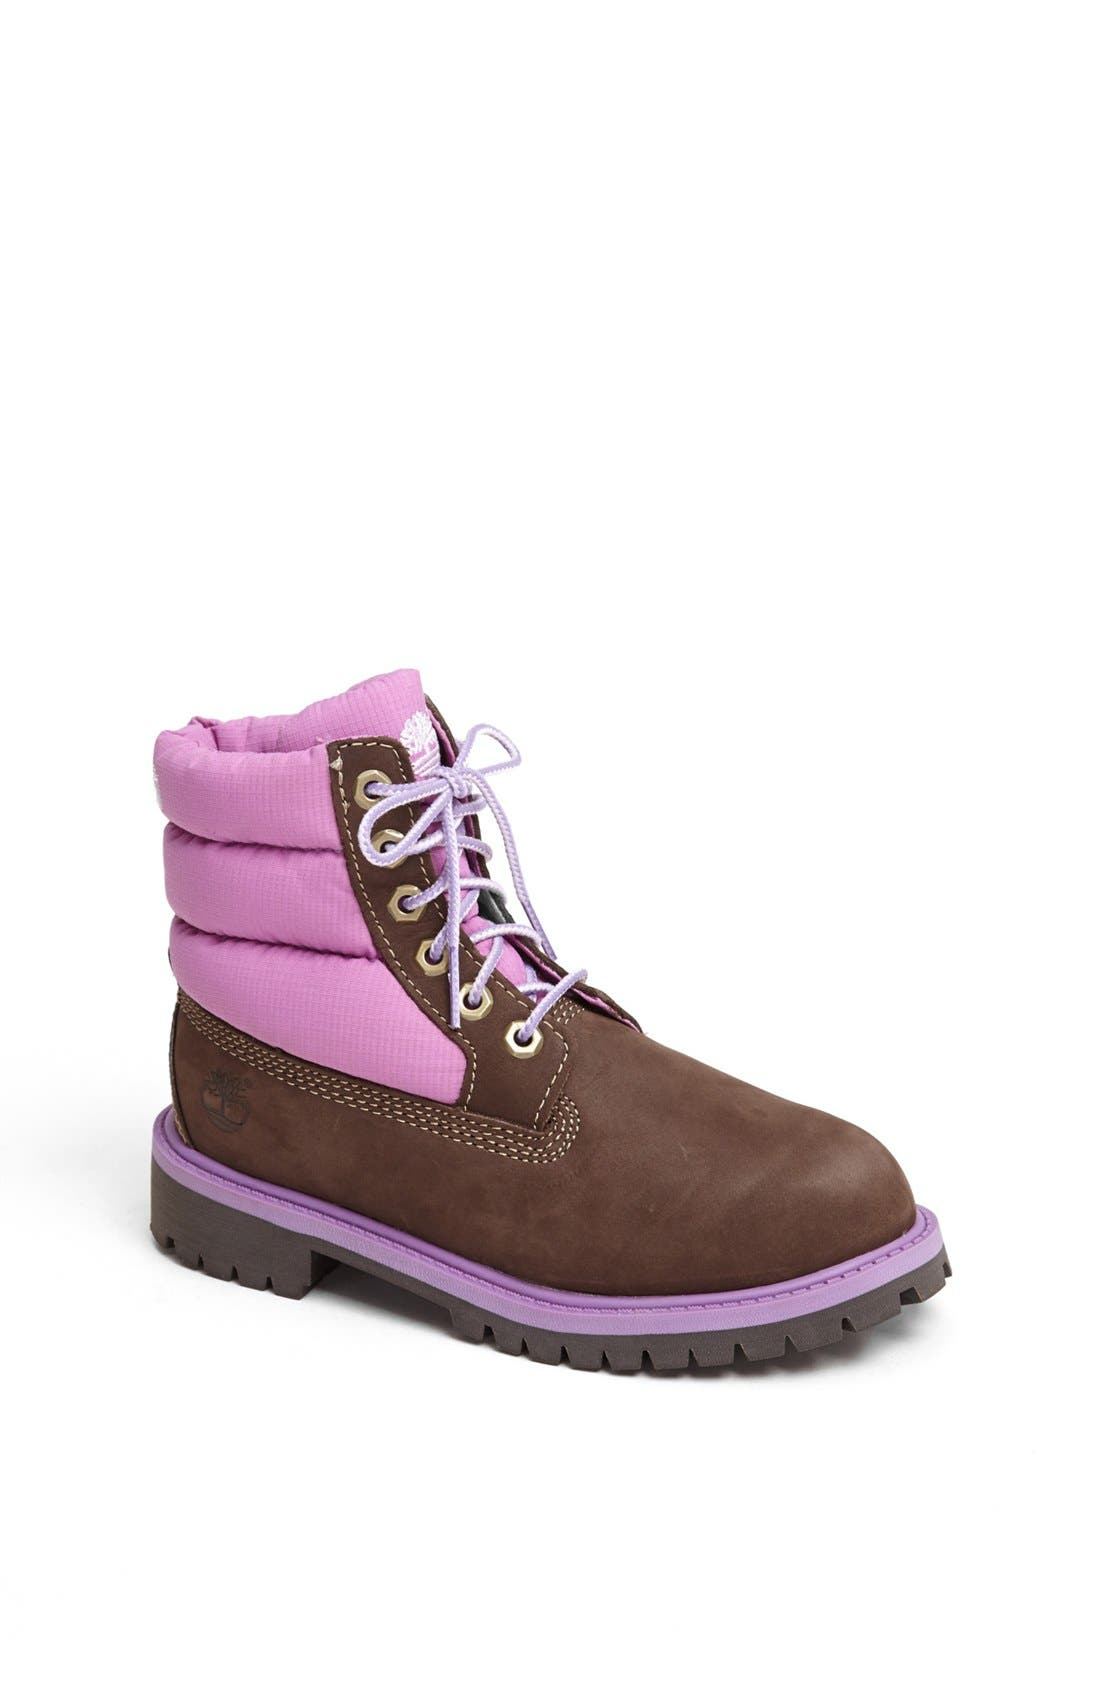 Alternate Image 1 Selected - Timberland Quilted Boot (Toddler, Little Kid & Big Kid)